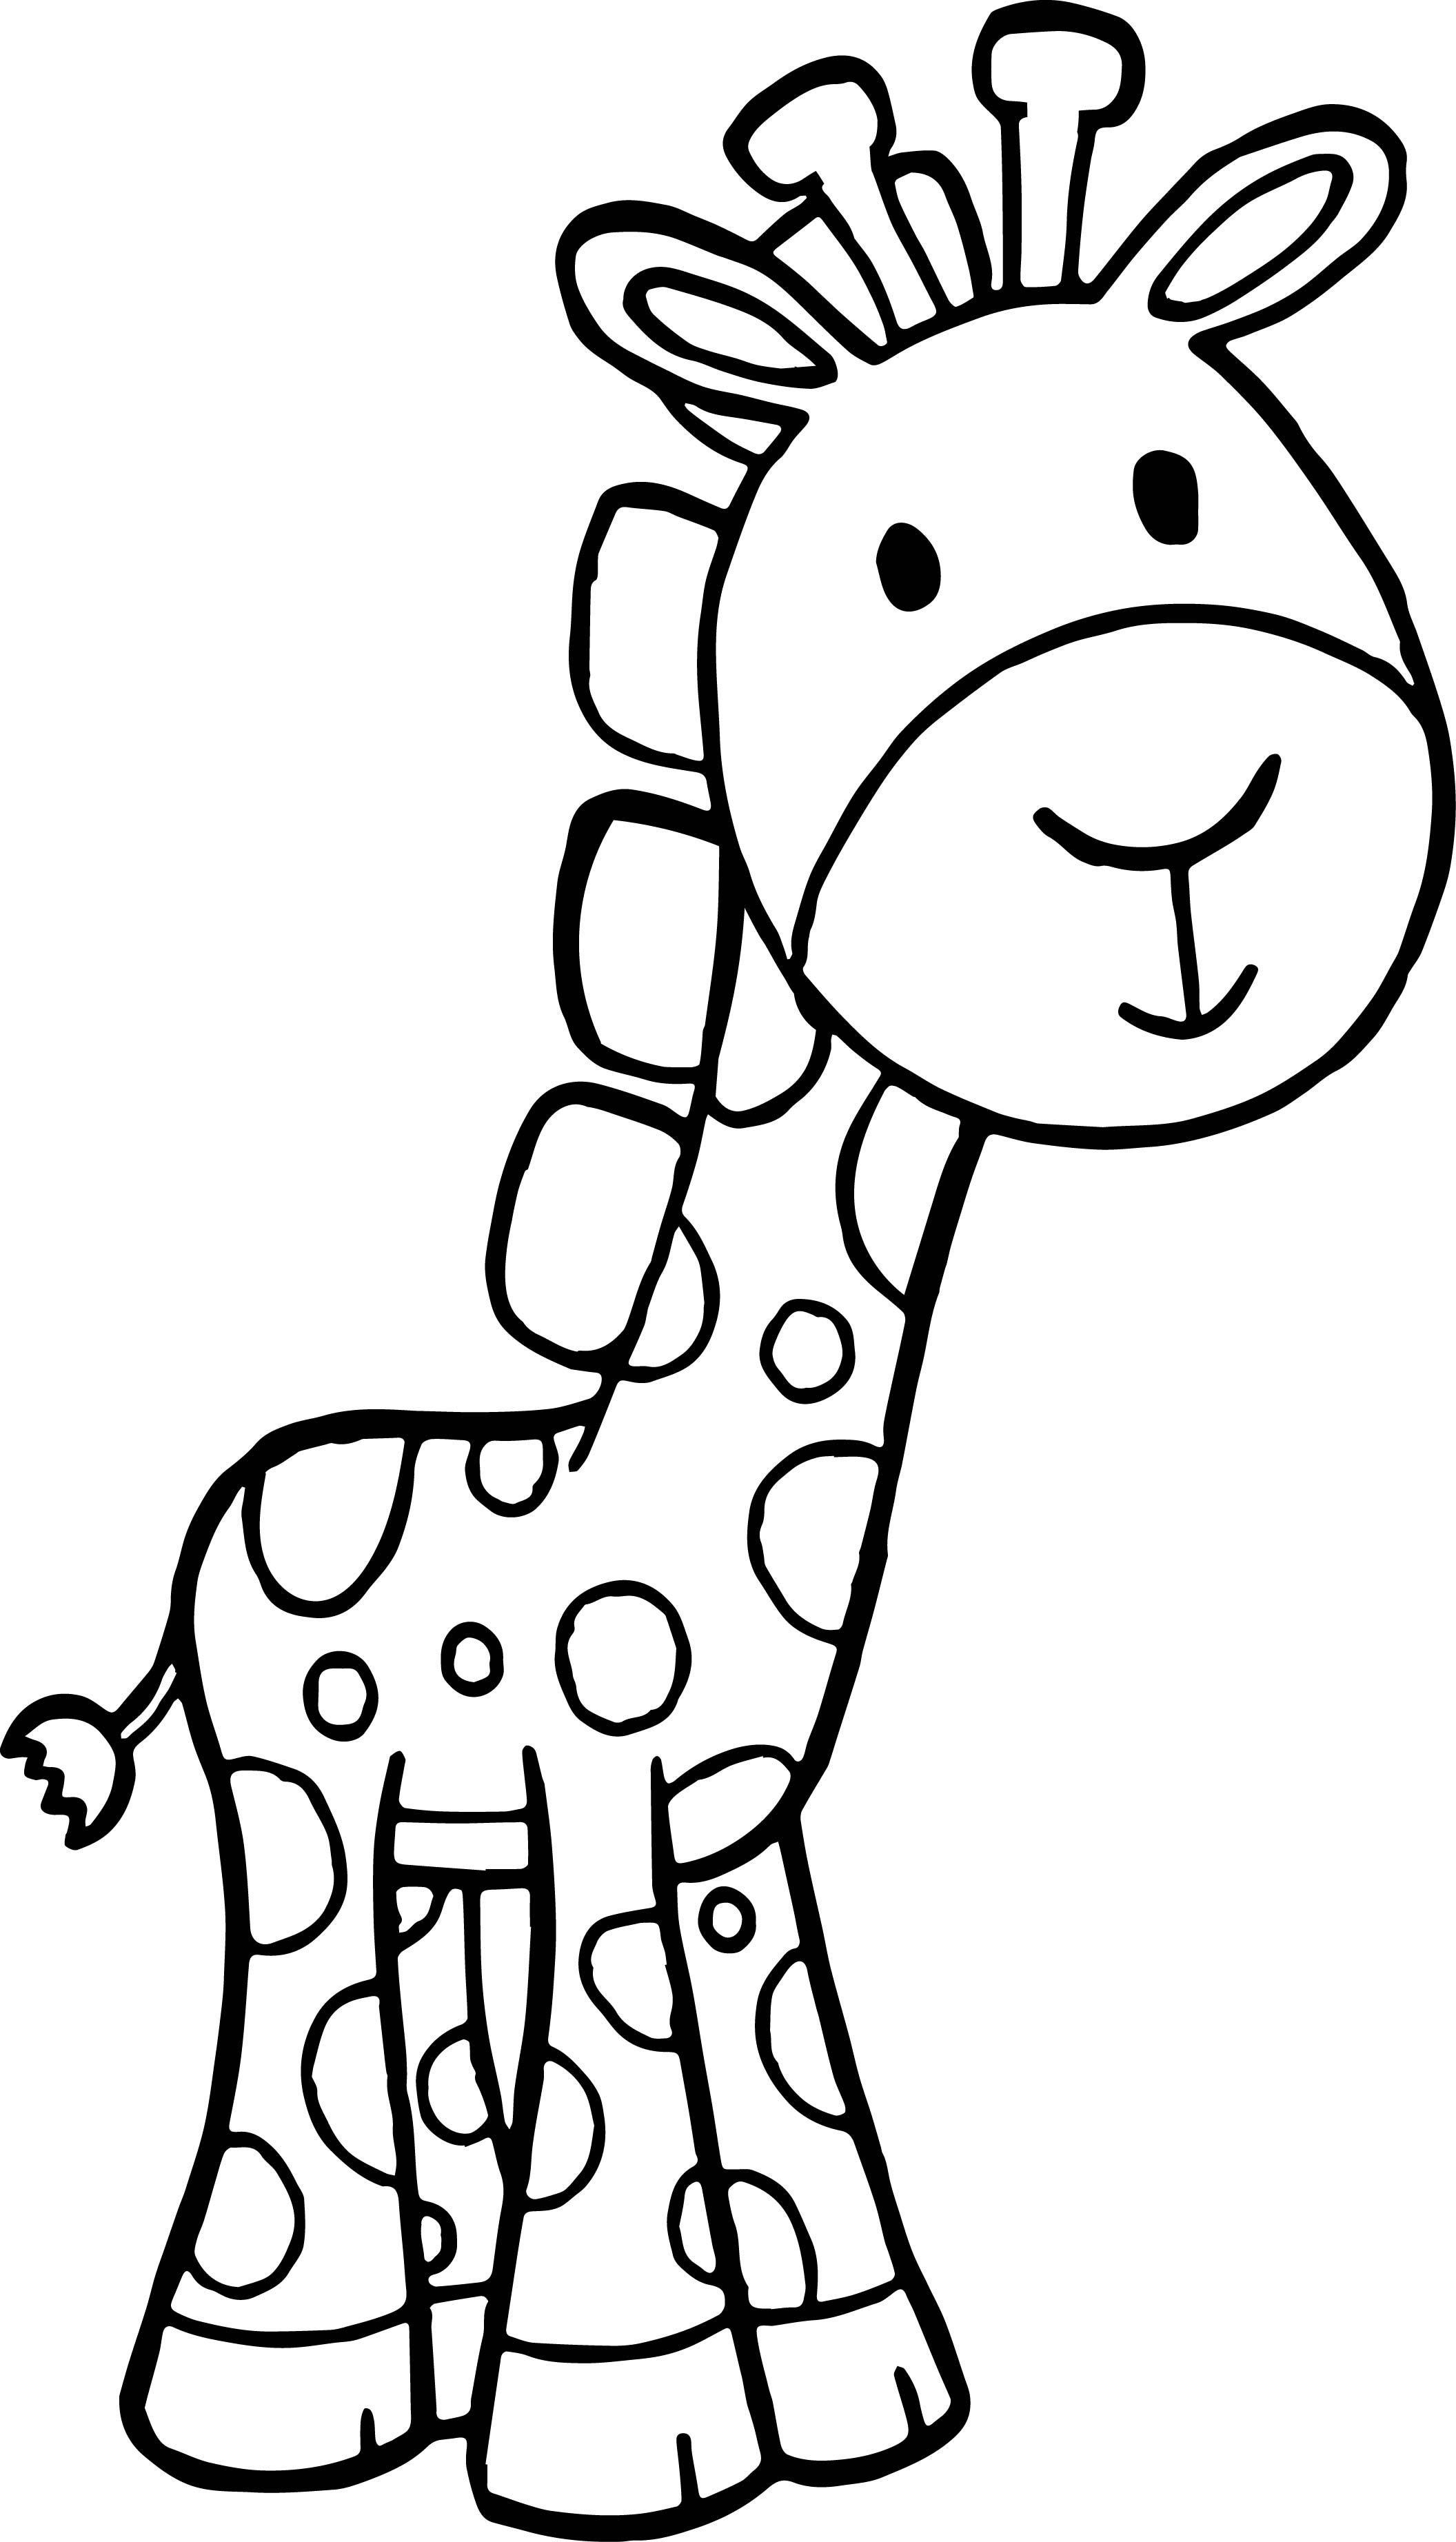 cute giraffe coloring pages free printable giraffe coloring pages for adults giraffe giraffe coloring pages cute